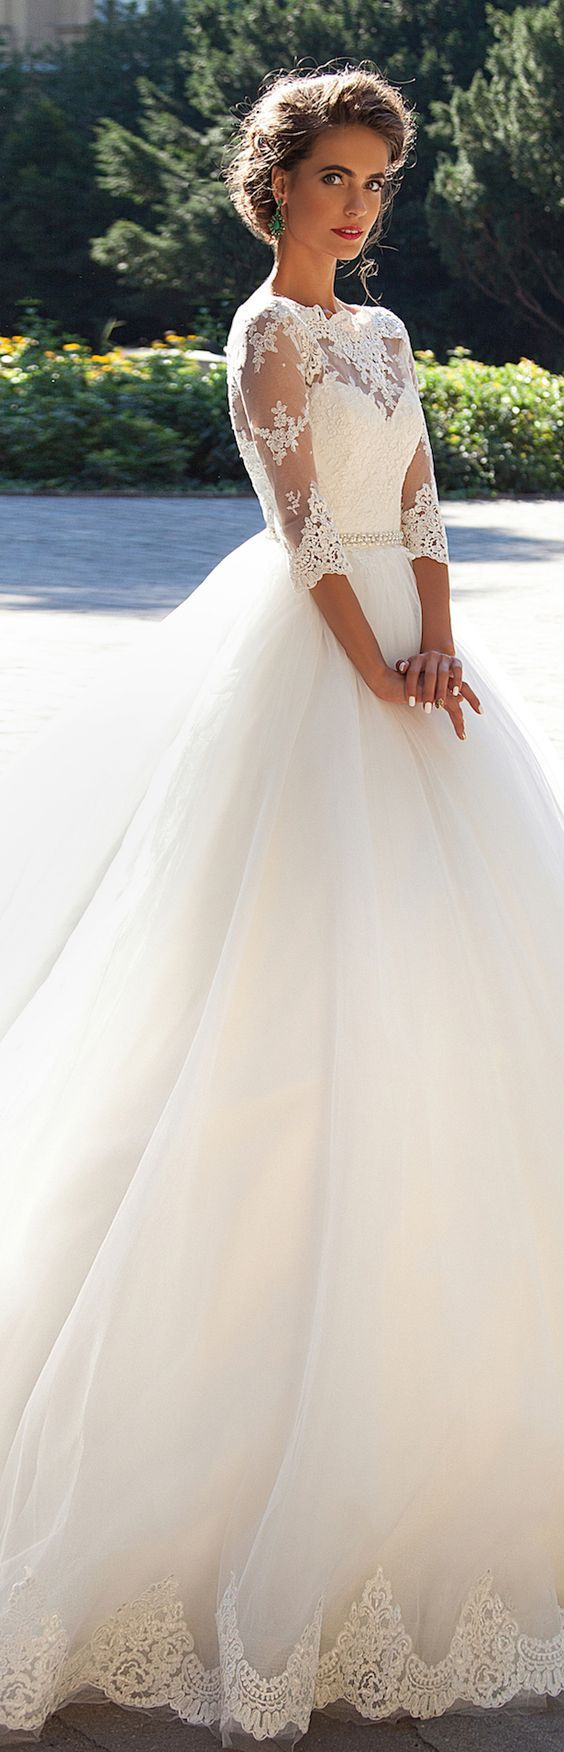 9a157b87d13 20 Gorgeous Wedding Dresses for Every Style — IndyBride2B